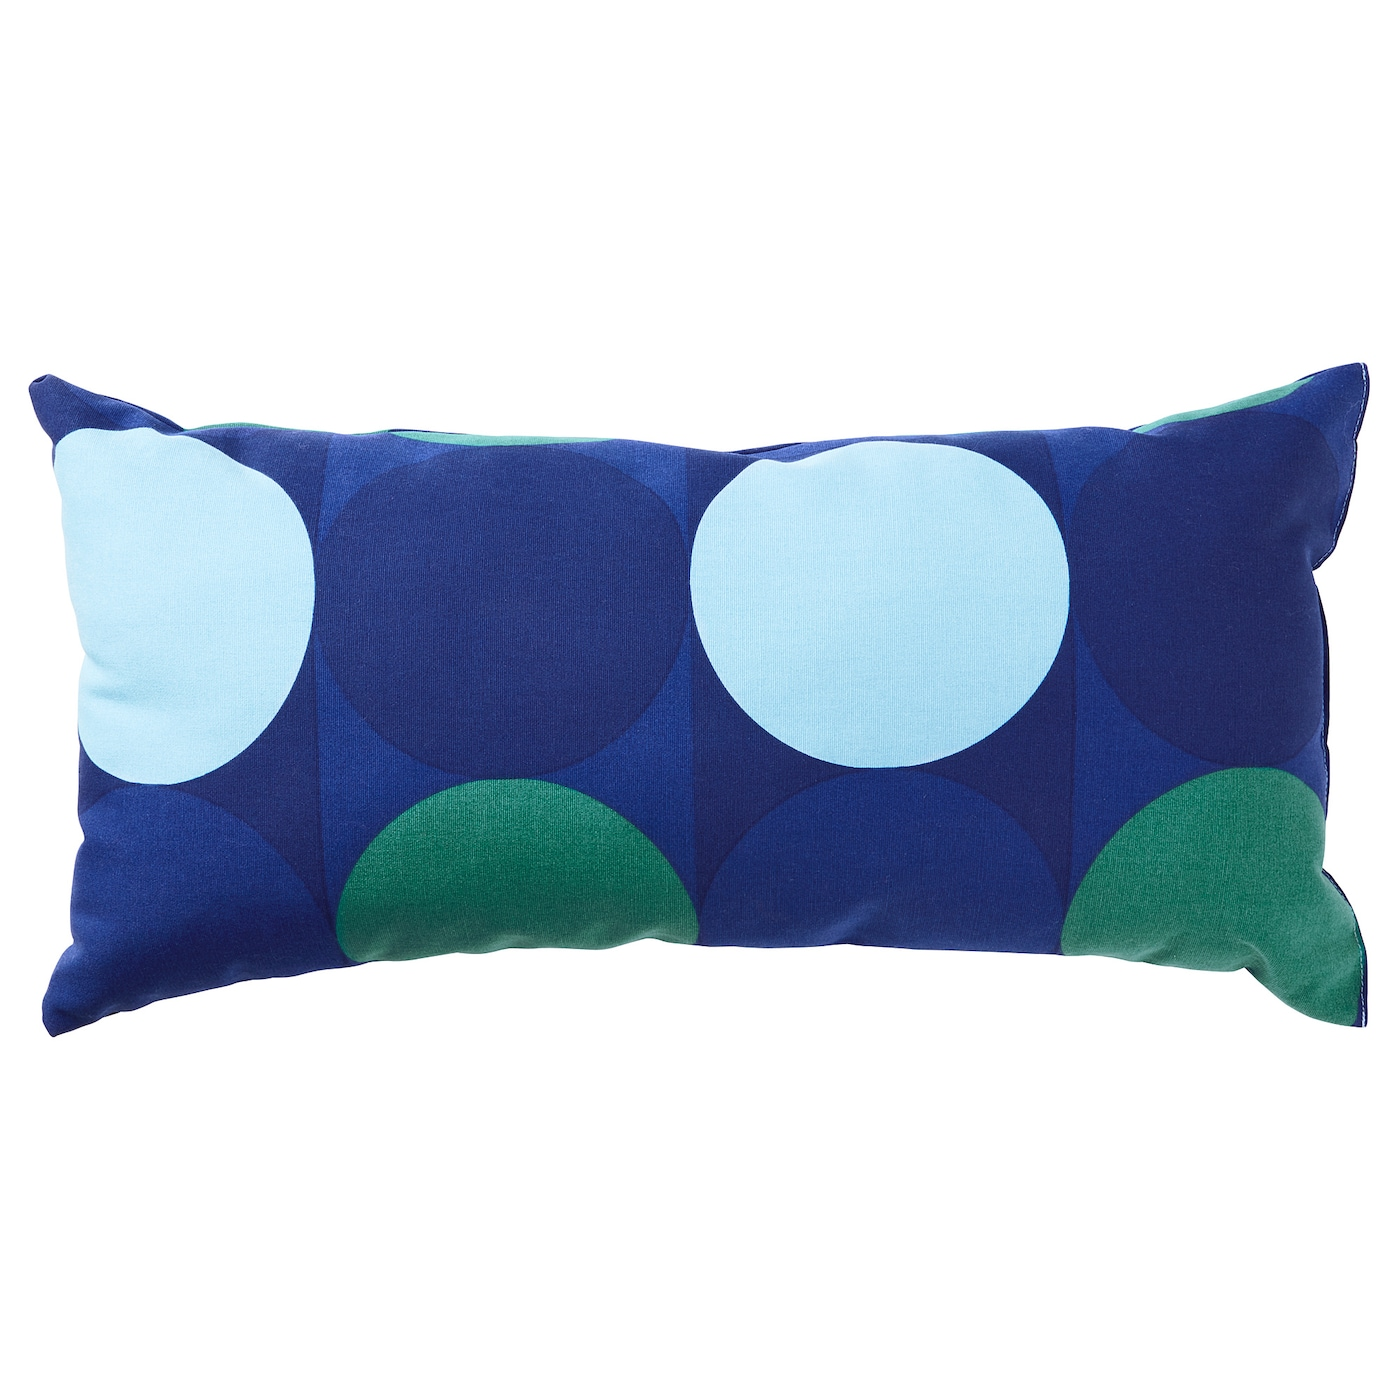 IKEA KROKUSLILJA cushion The polyester filling holds its shape and gives your body soft support.